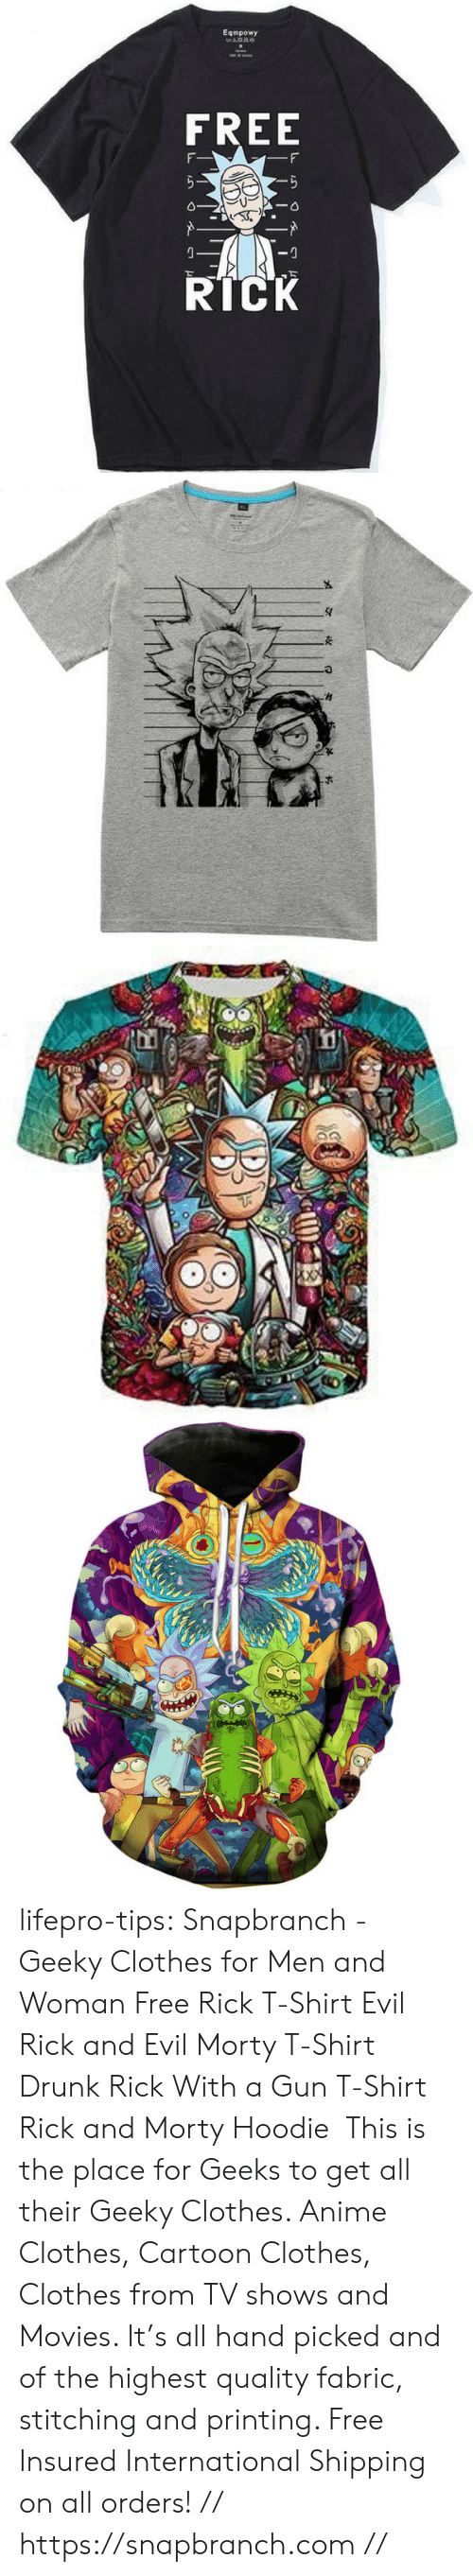 psychedelic: Eqmpowy  FREE  RICK lifepro-tips:   Snapbranch  - Geeky Clothes  for Men and Woman  Free Rick T-Shirt  Evil Rick and Evil Morty T-Shirt  Drunk Rick With a Gun  T-Shirt   Rick and Morty Hoodie  This is the place for Geeks to get all their Geeky Clothes. Anime Clothes, Cartoon Clothes, Clothes from TV shows and Movies.  It's all hand picked and of the highest quality fabric, stitching and  printing. Free Insured International Shipping on all orders! // https://snapbranch.com //